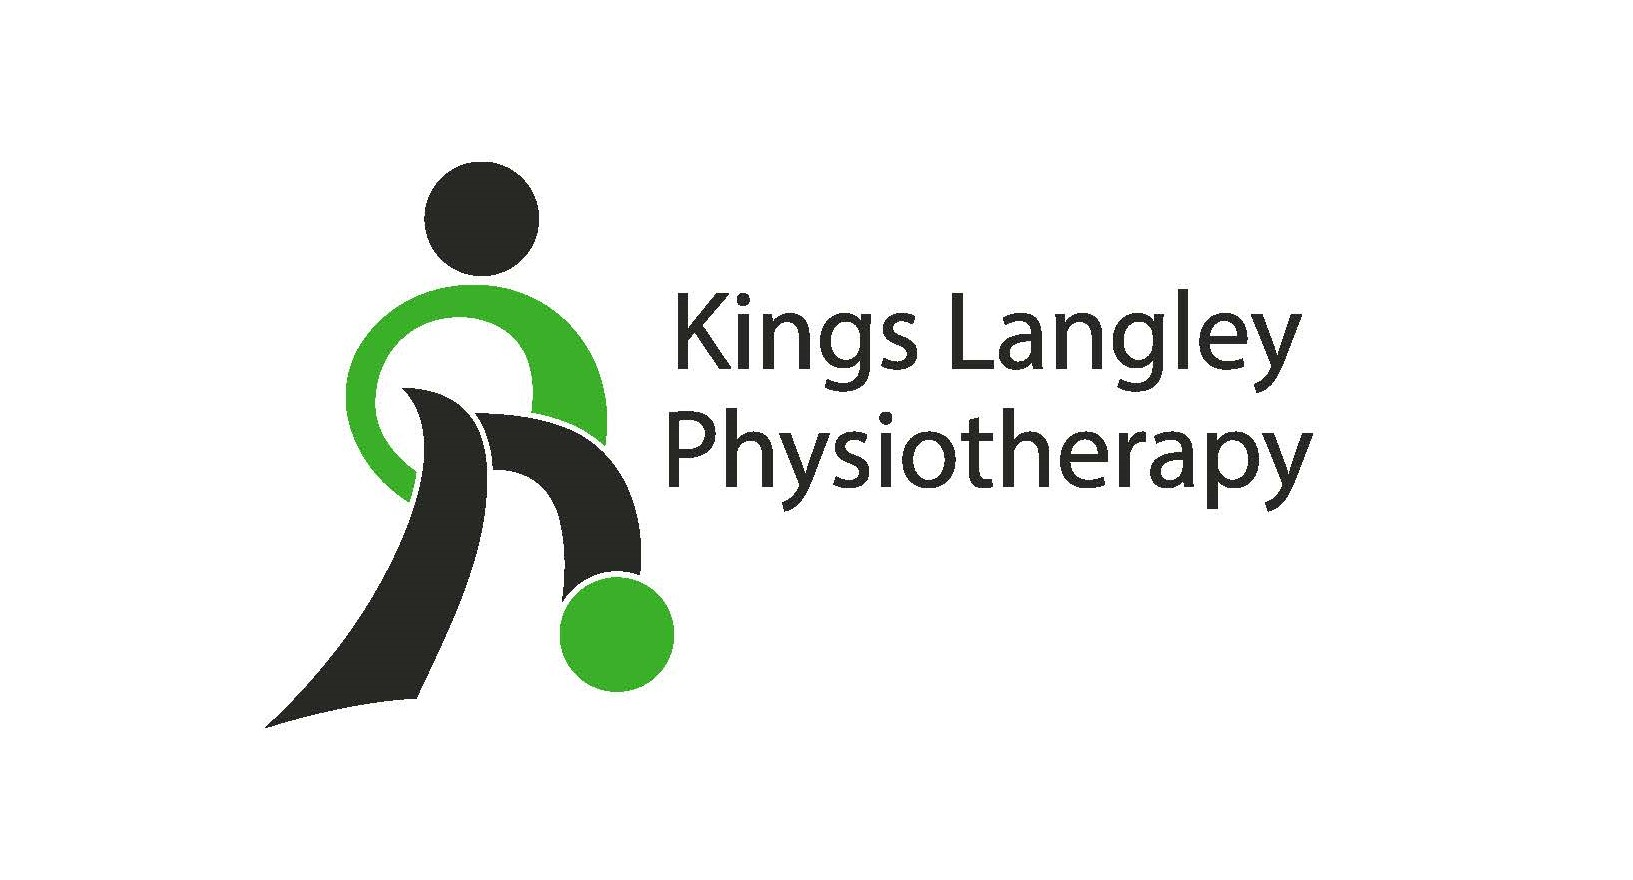 KINGS LANGLEY PHYSIOTHERAPY